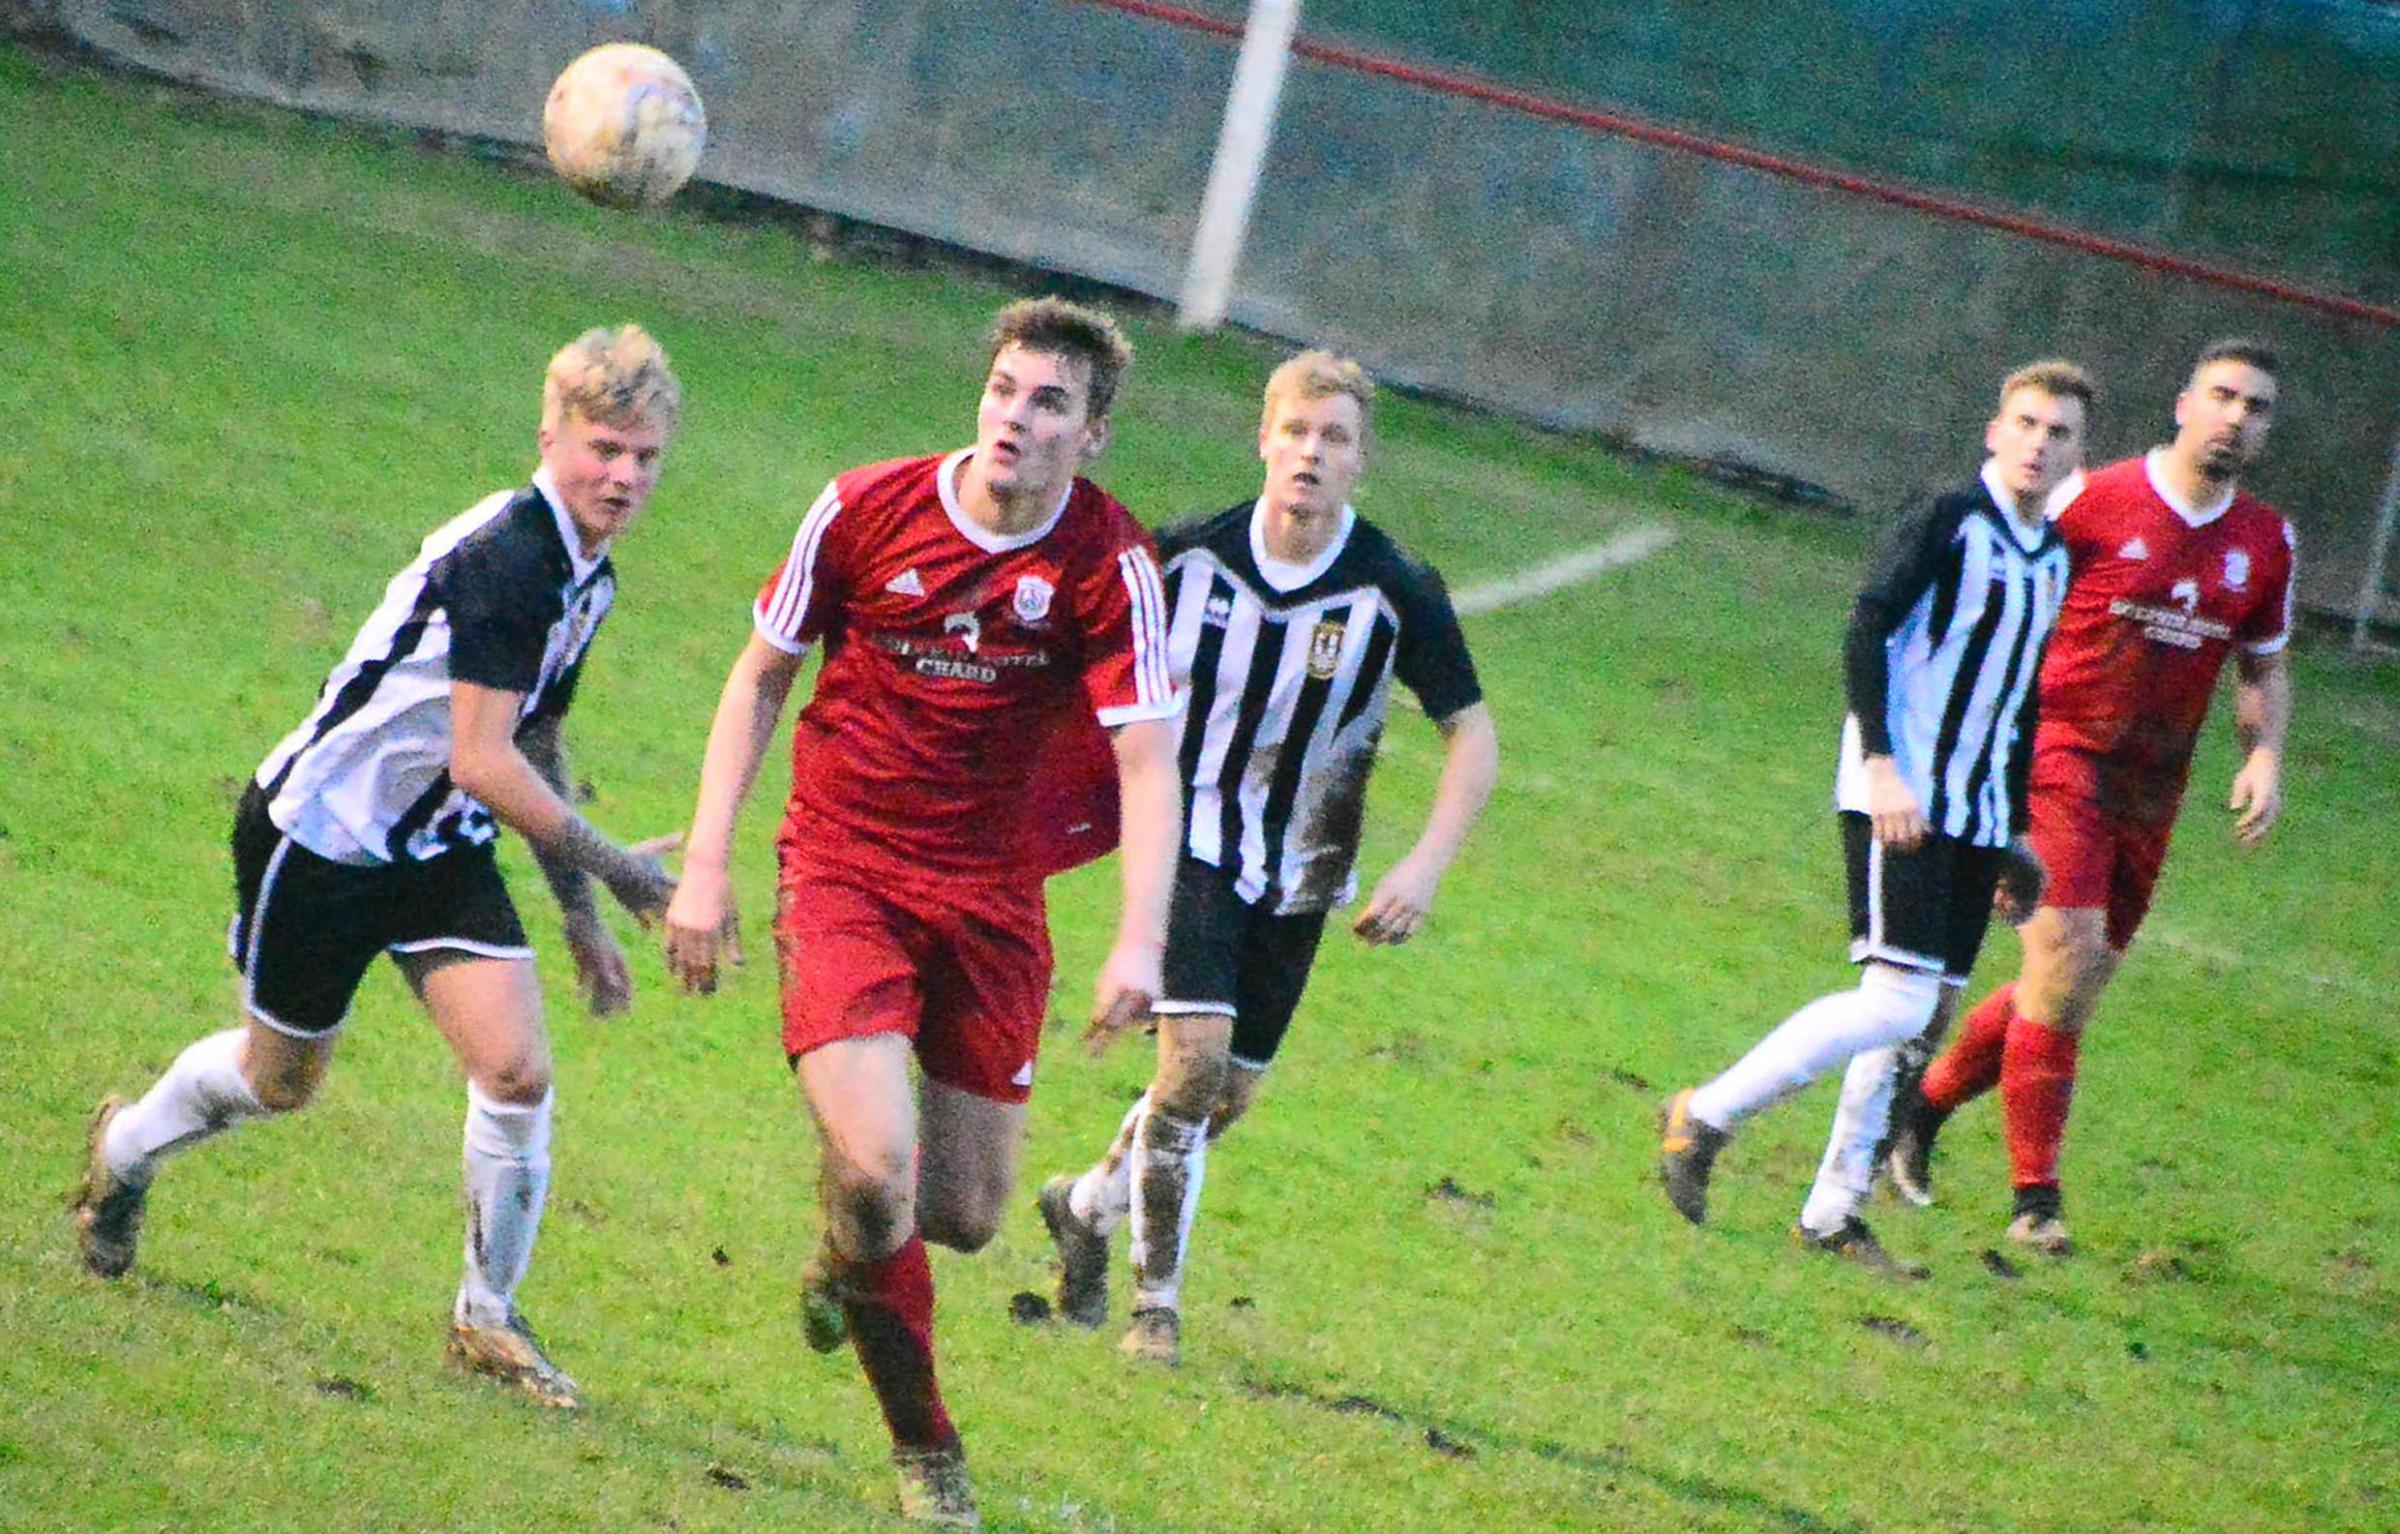 RETURN: Chard Town are aiming to get back to league action this weekend